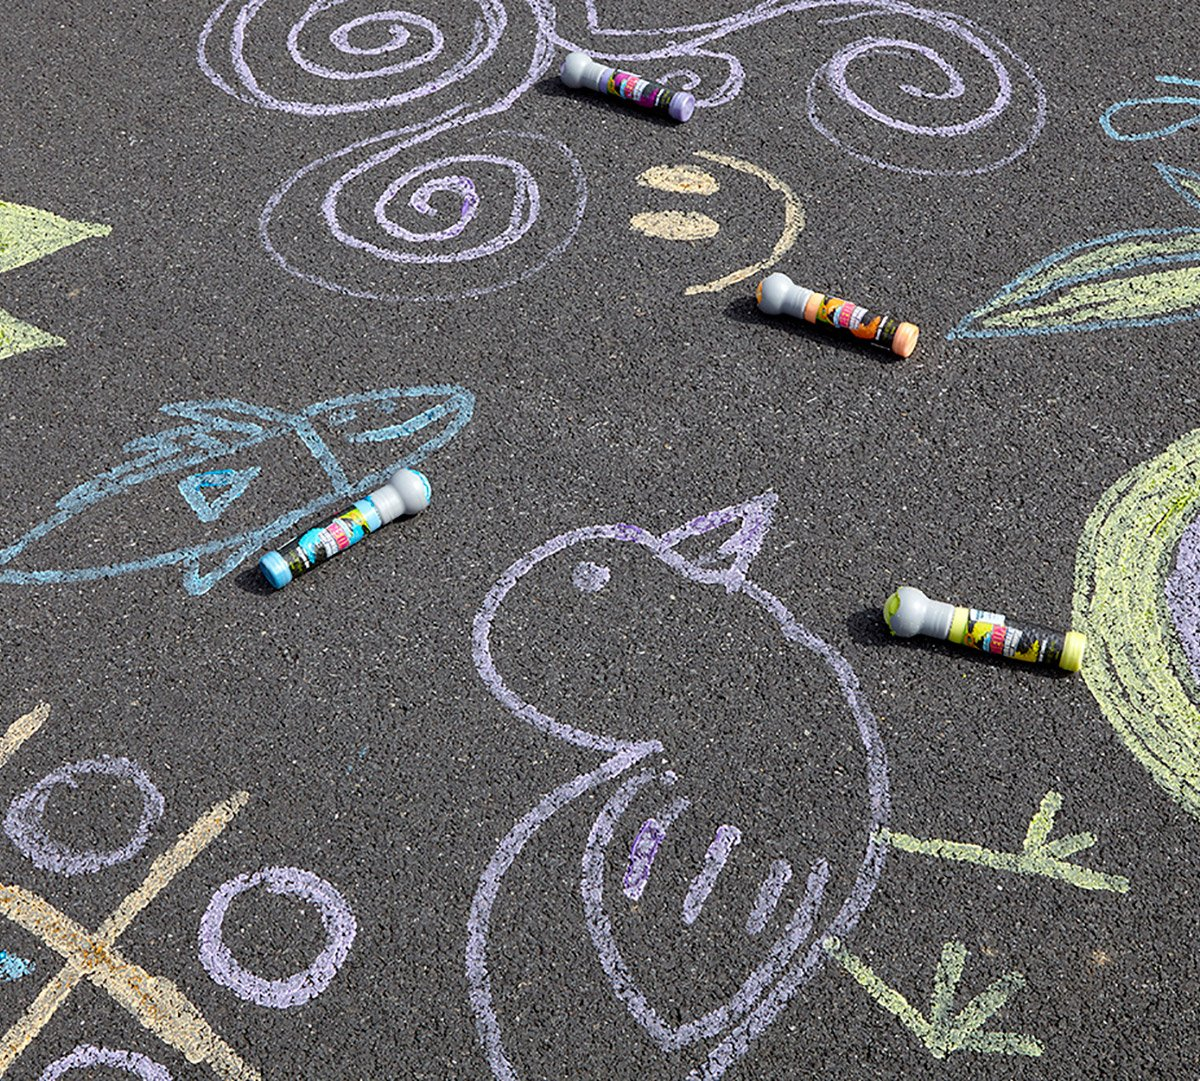 Crayola Neon Paint Markers, Outdoor Toy Sidewalk Paint, 4 Color Pack by Crayola (Image #3)